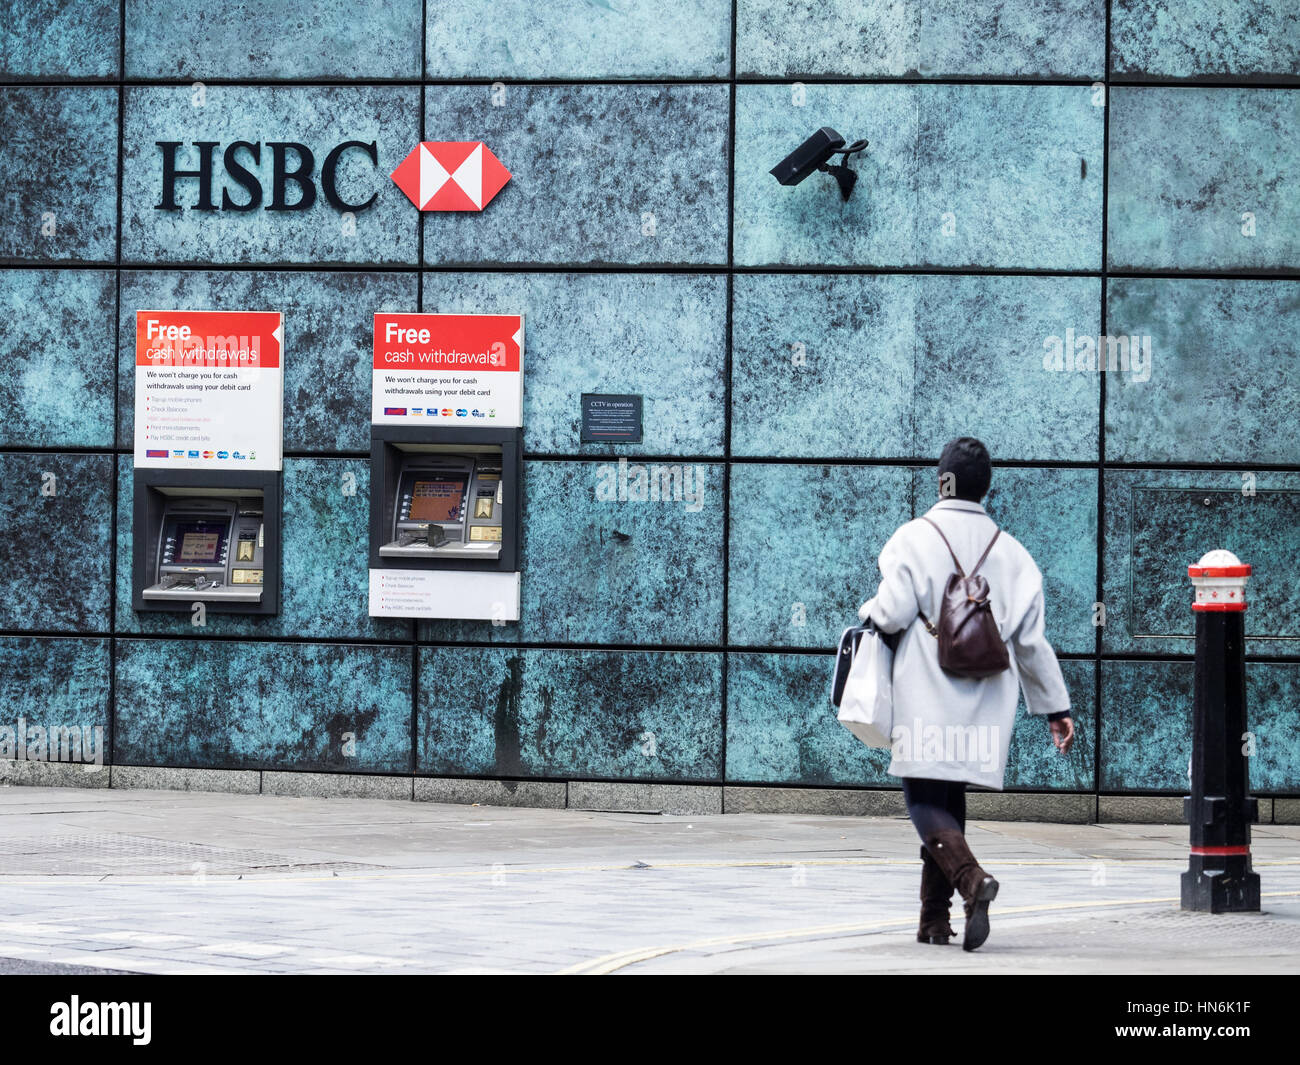 A woman walks towards HSBC cash machines in Central London Stock Photo